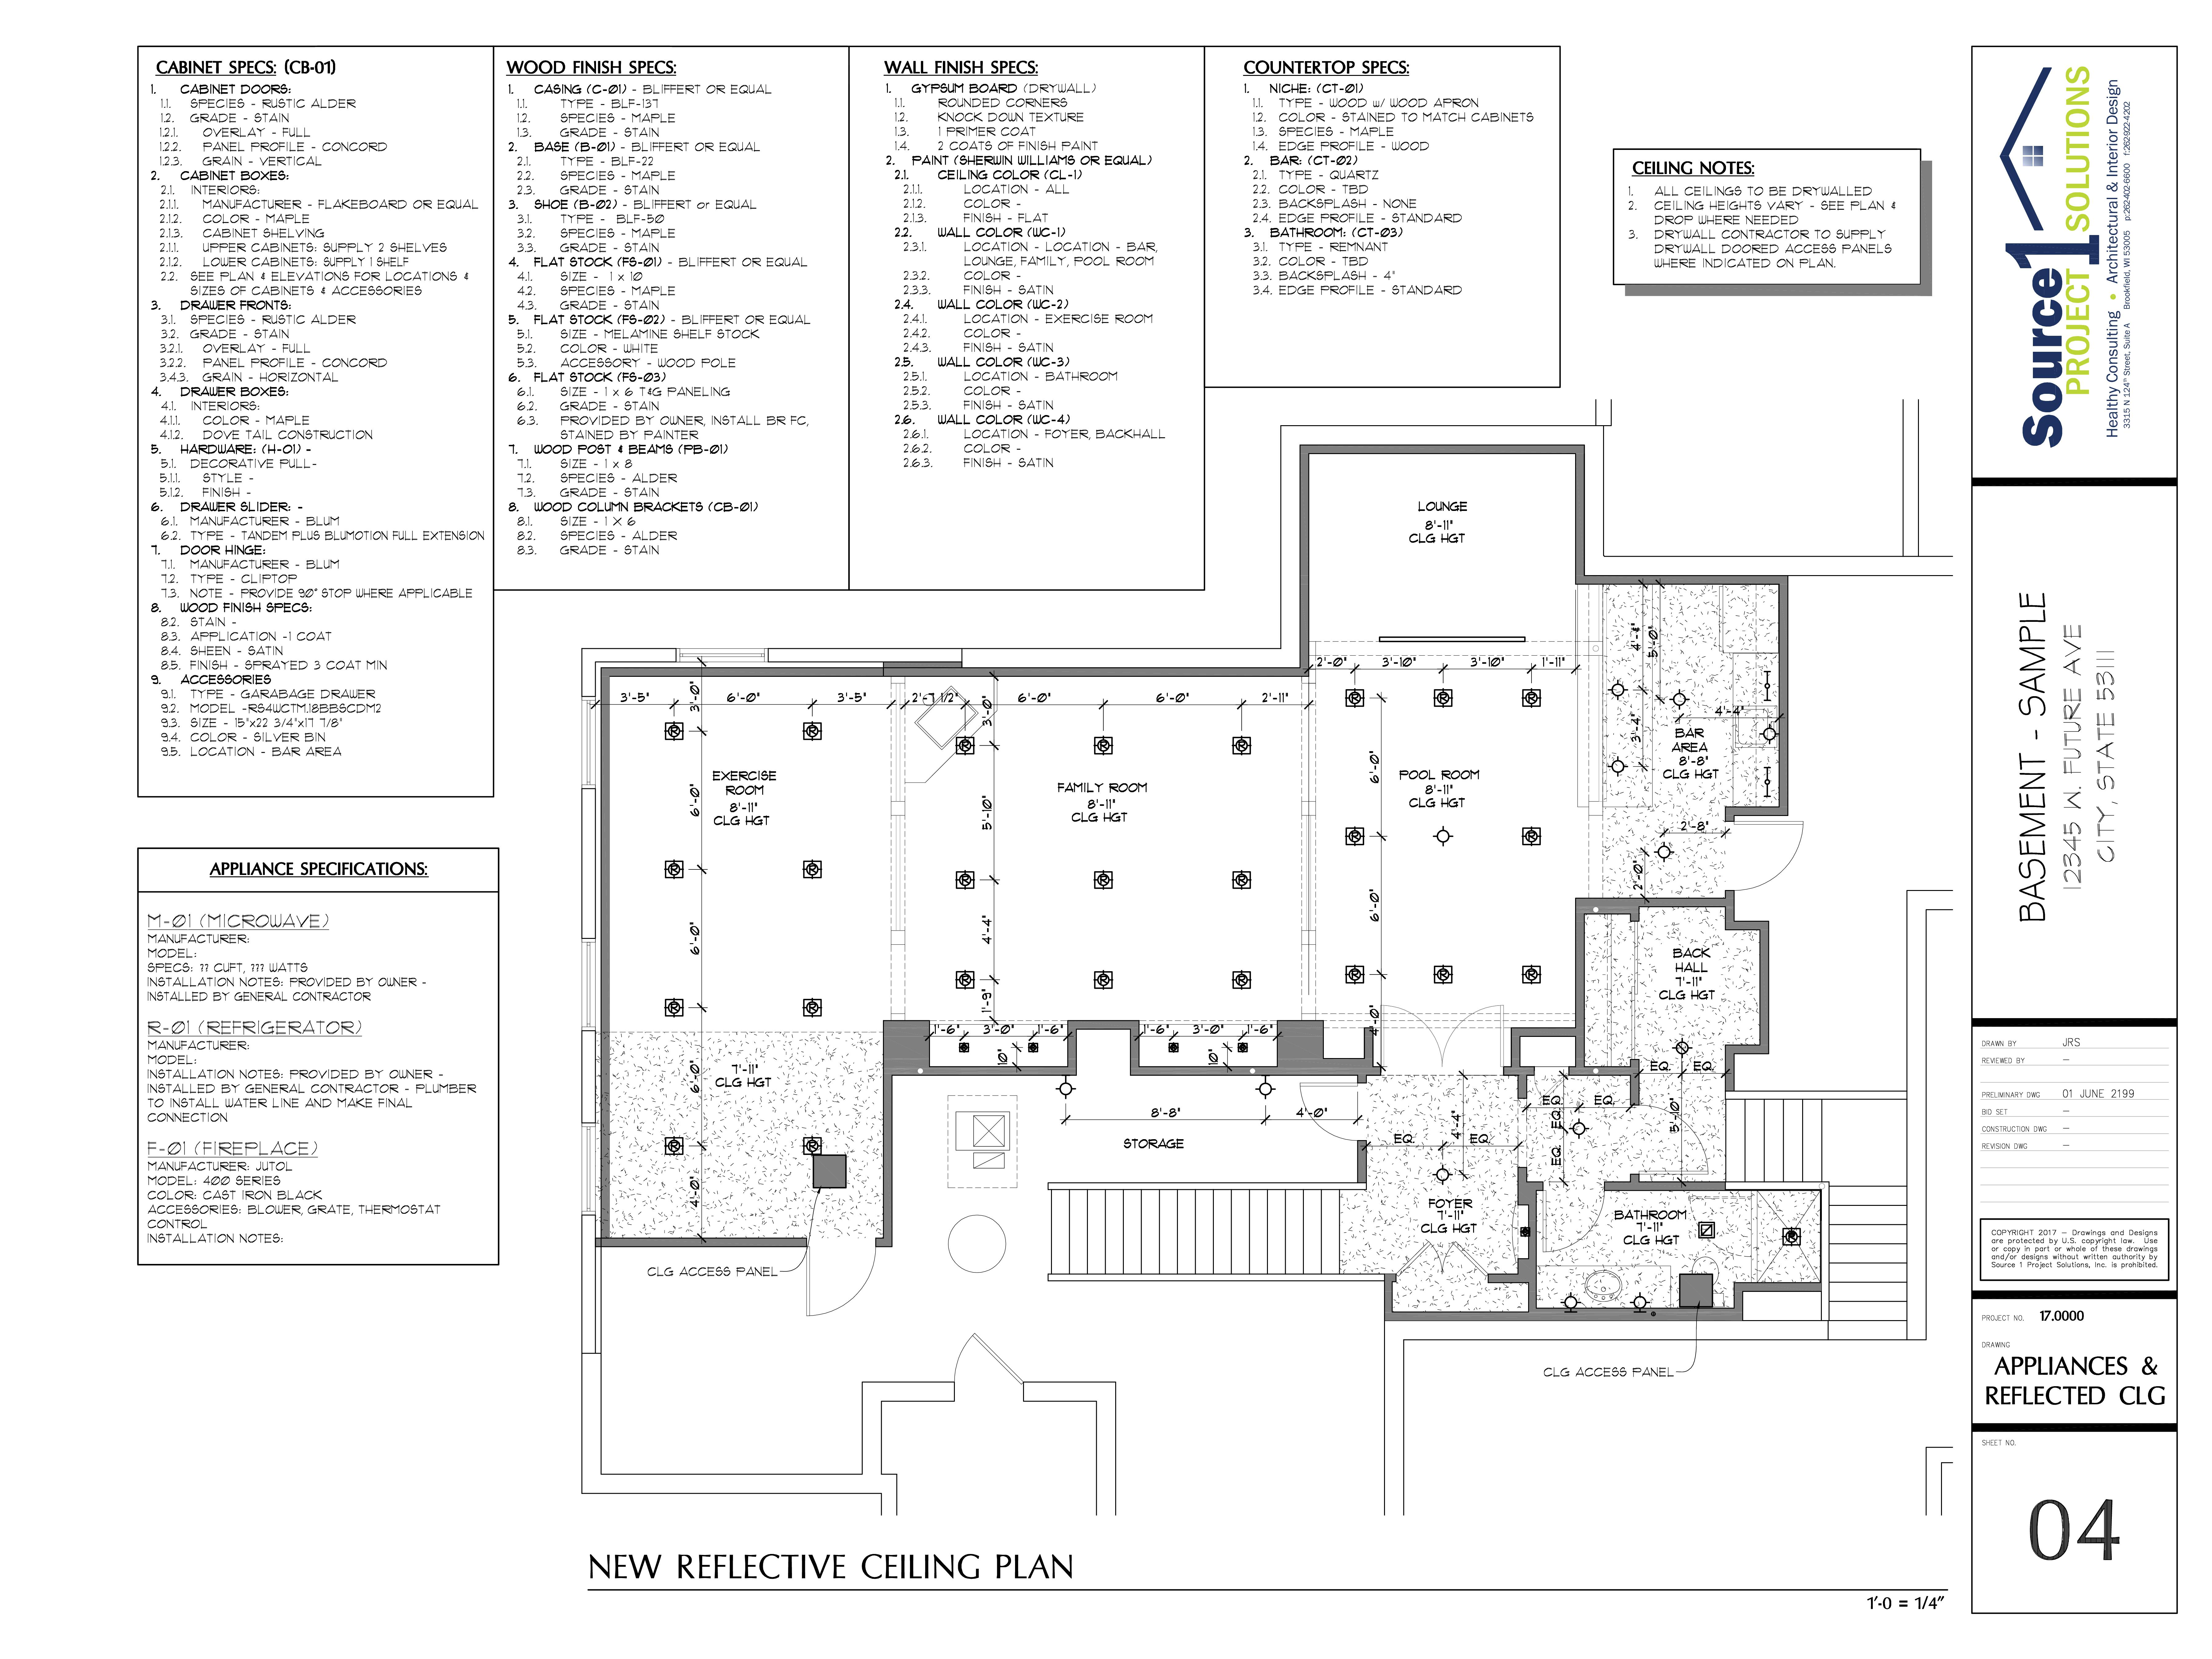 Source 1 Basement Plan - SAMPLE 01_4